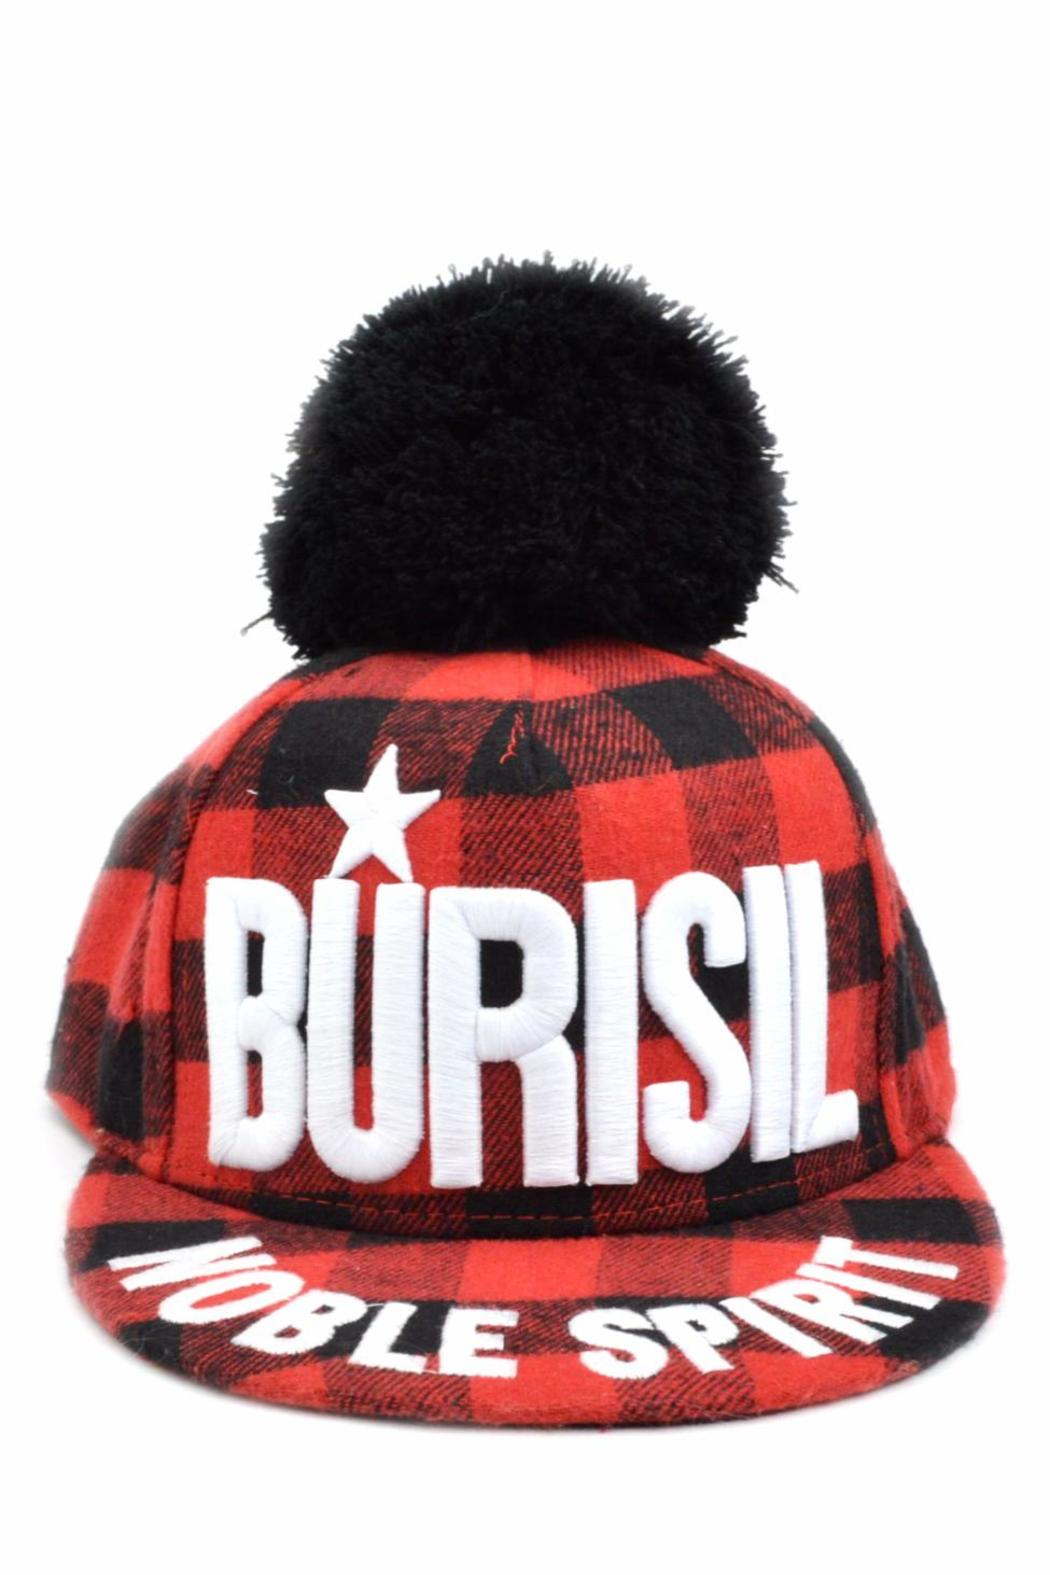 Burisil Plaid Baseball Cap - Main Image